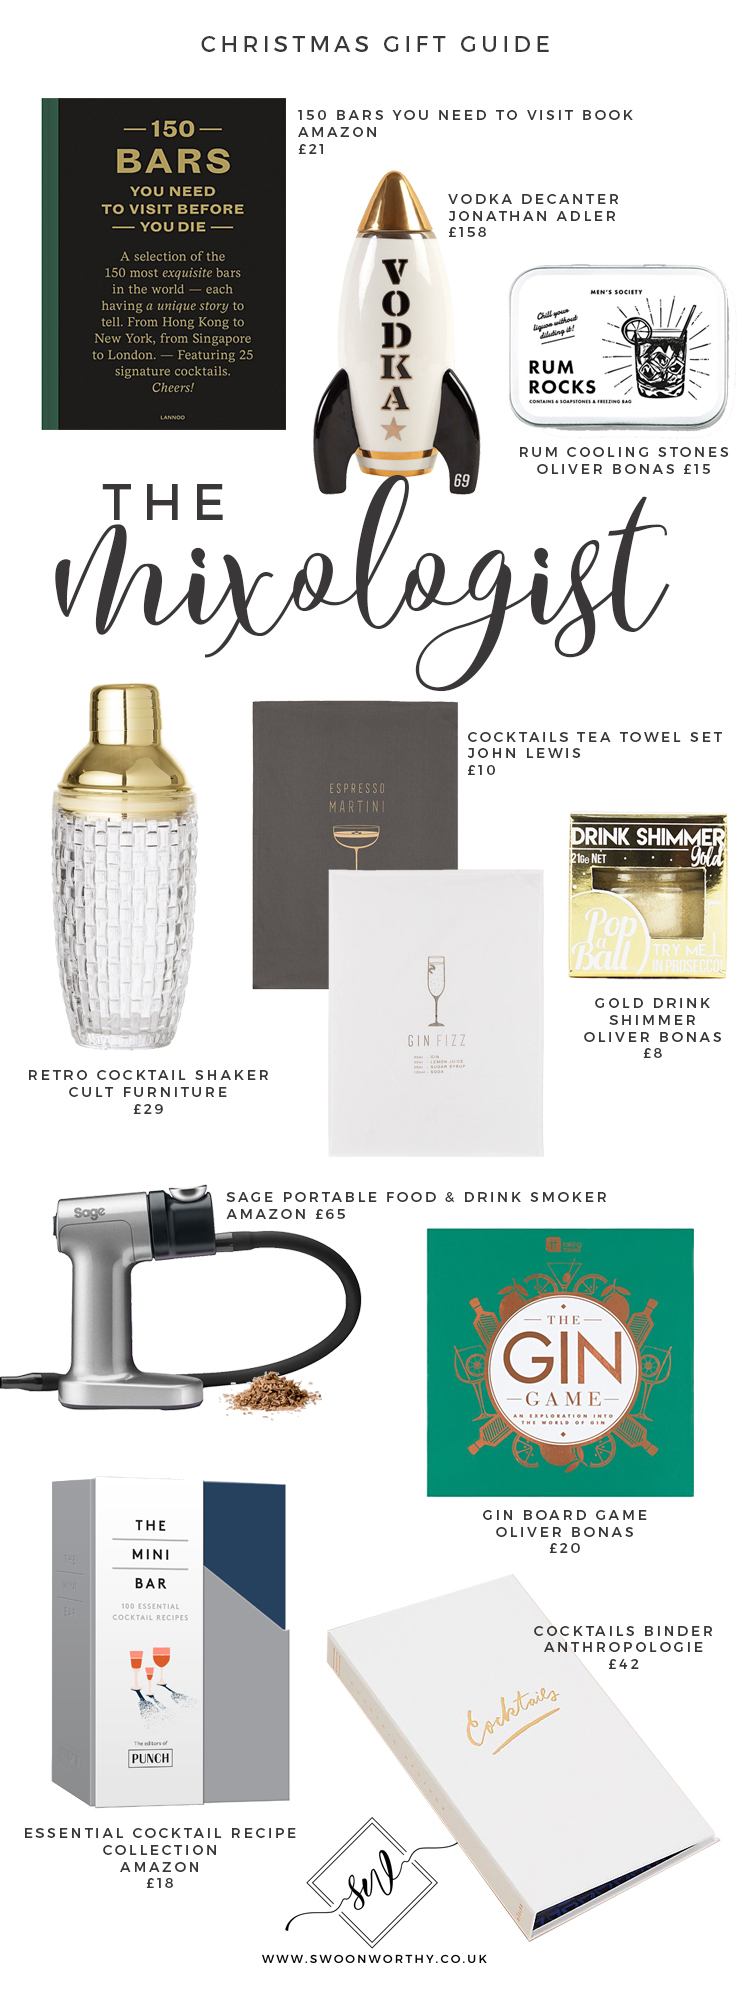 The Mixologist Christmas Gift Guide